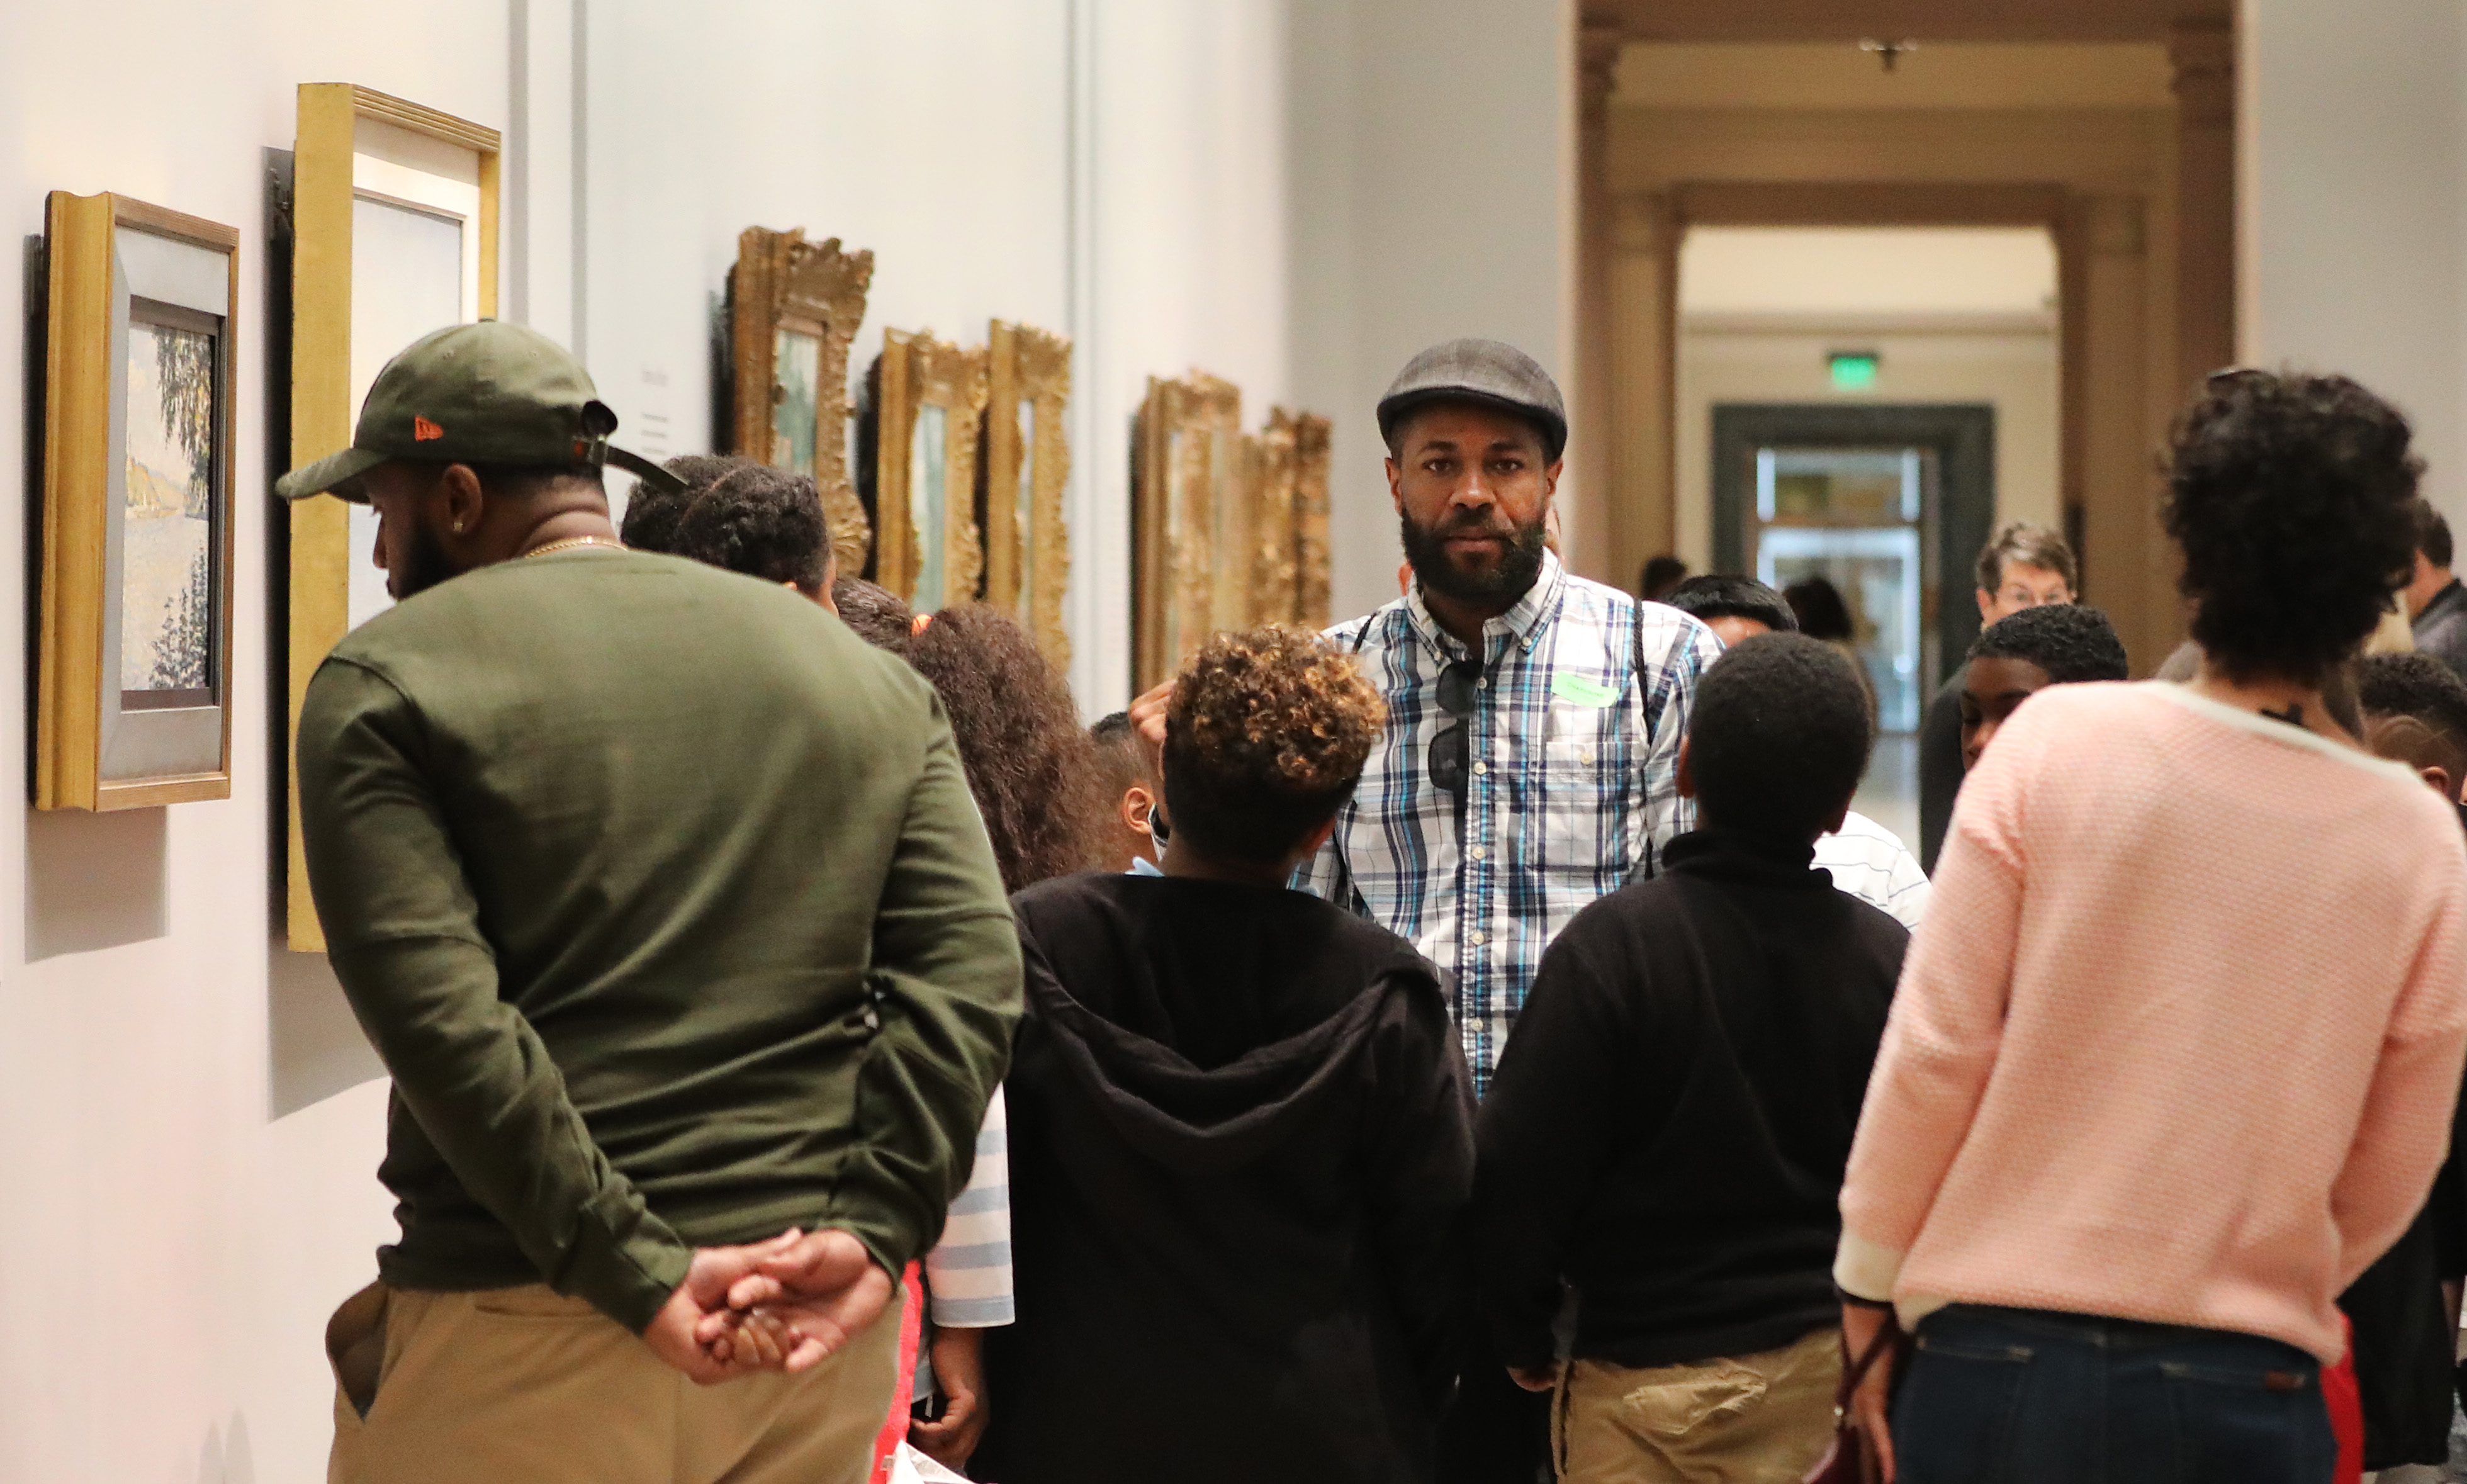 Yes, black people belong at the MFA